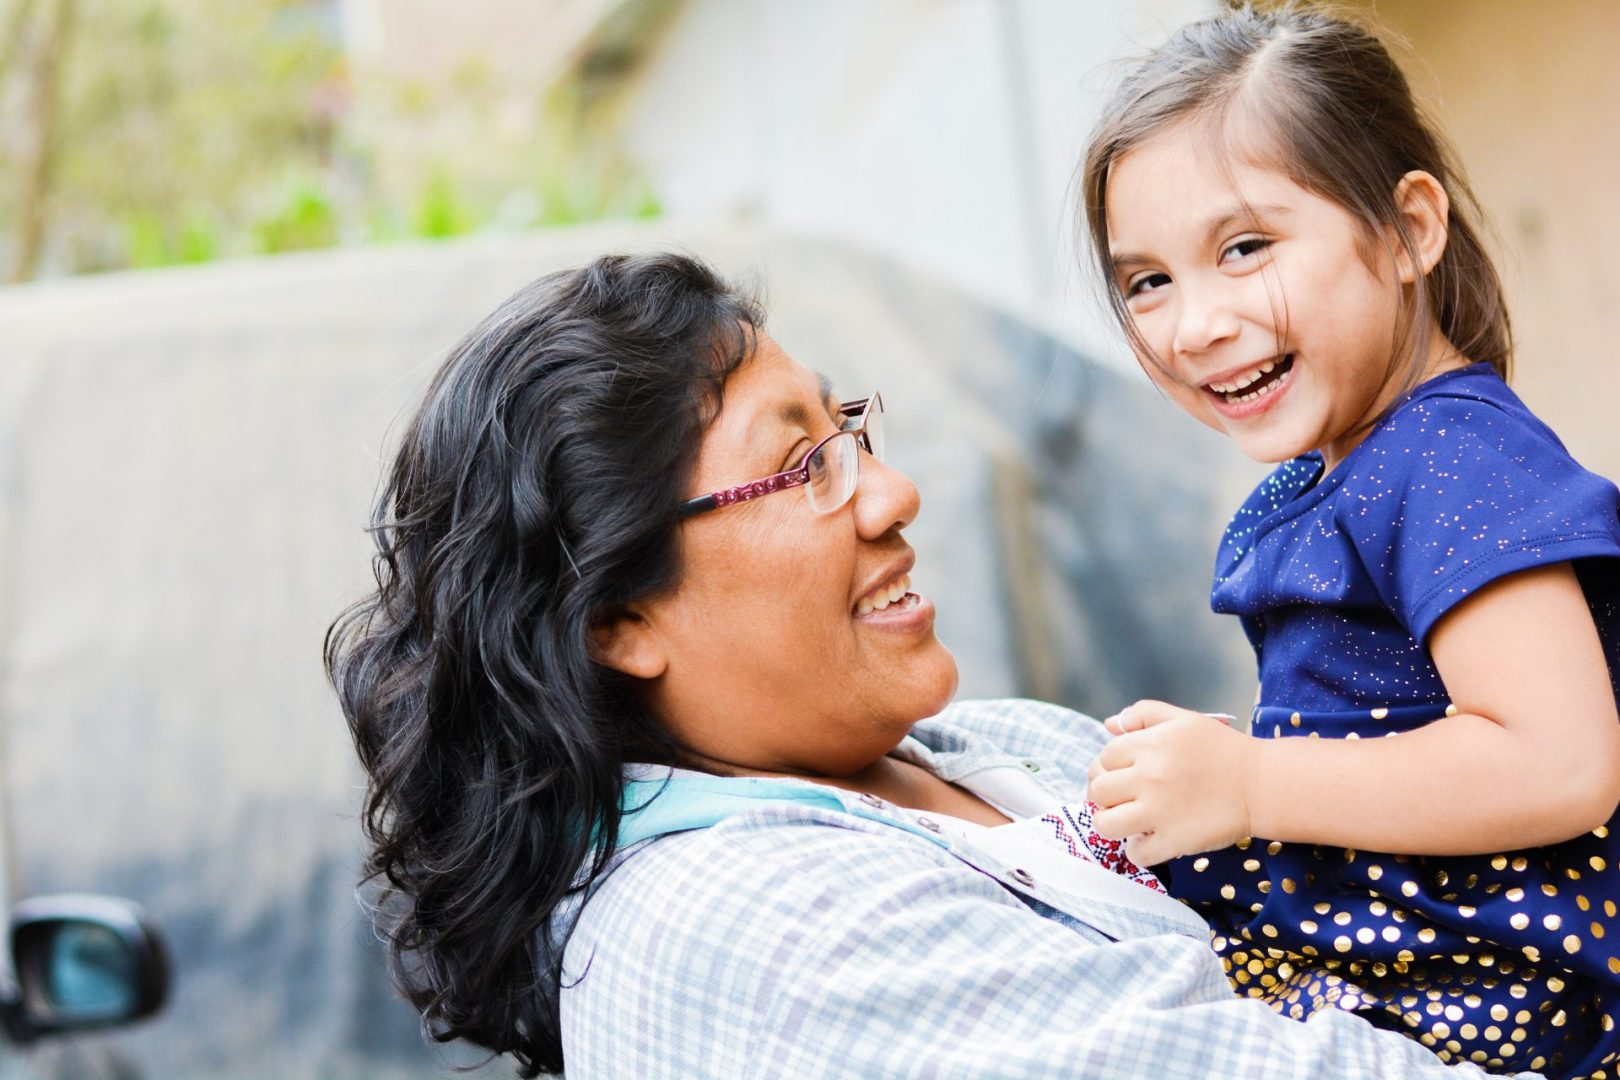 mother and adopted child smiling at each other - adoptive families